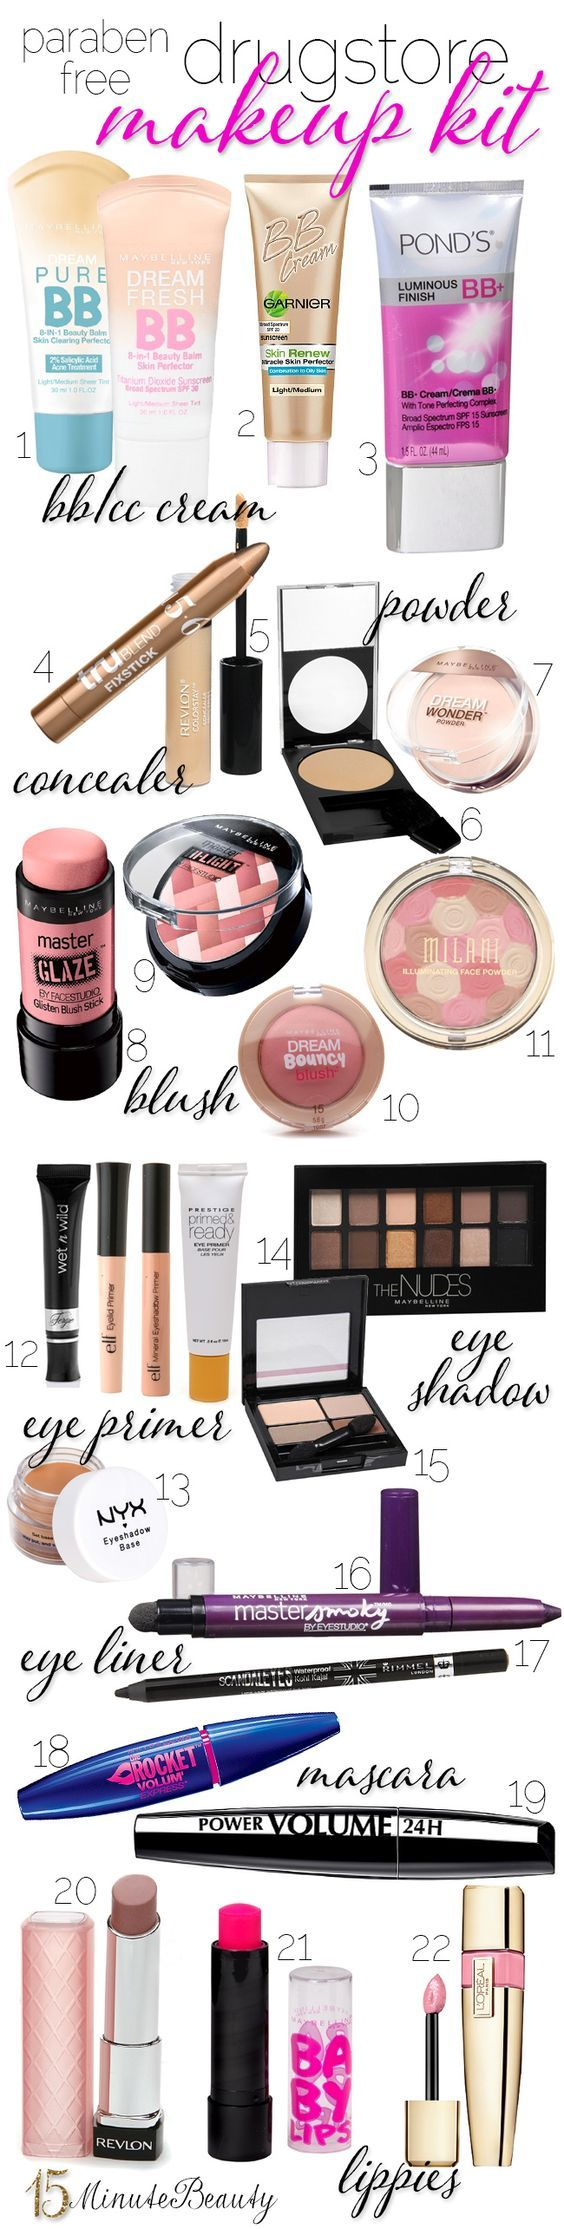 Paraben Free Drugstore Makeup Kit: Yes, It Is Possible!  - From 15minutebeauty.com | Glamour Shots Photography